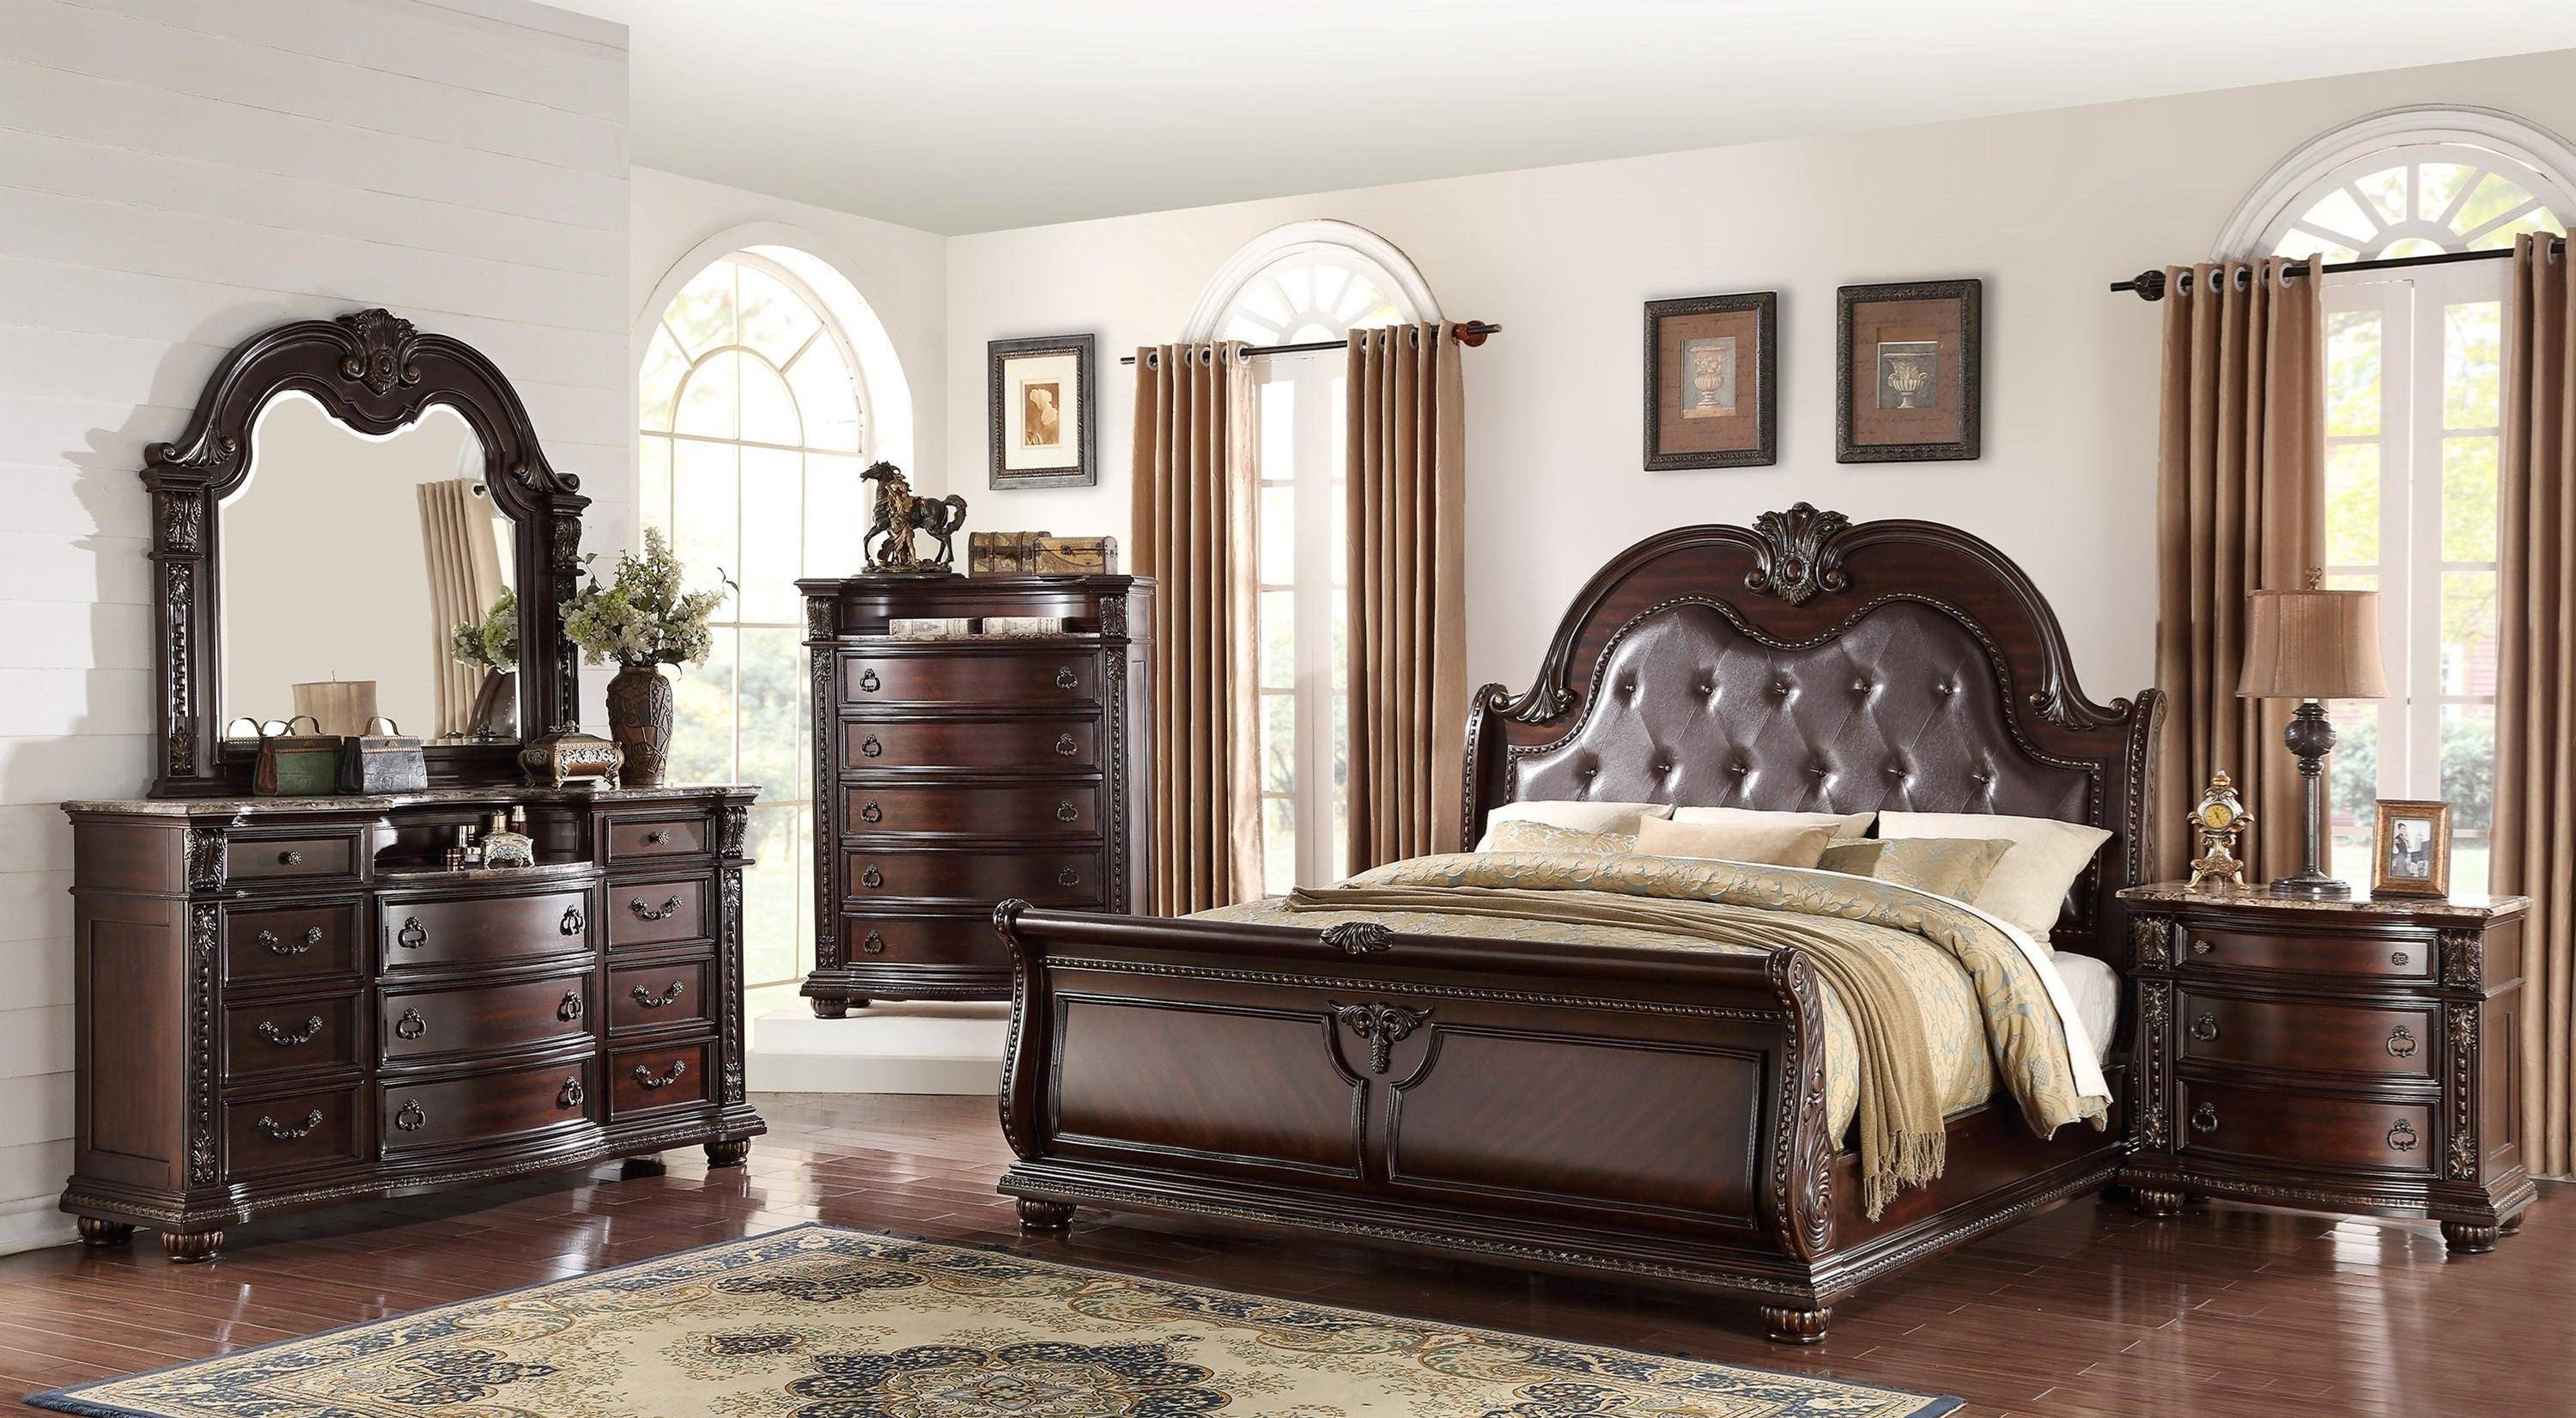 Solid Oak Bedroom Furniture Beautiful Crown Mark B1600 Stanley Cherry Finish solid Wood King